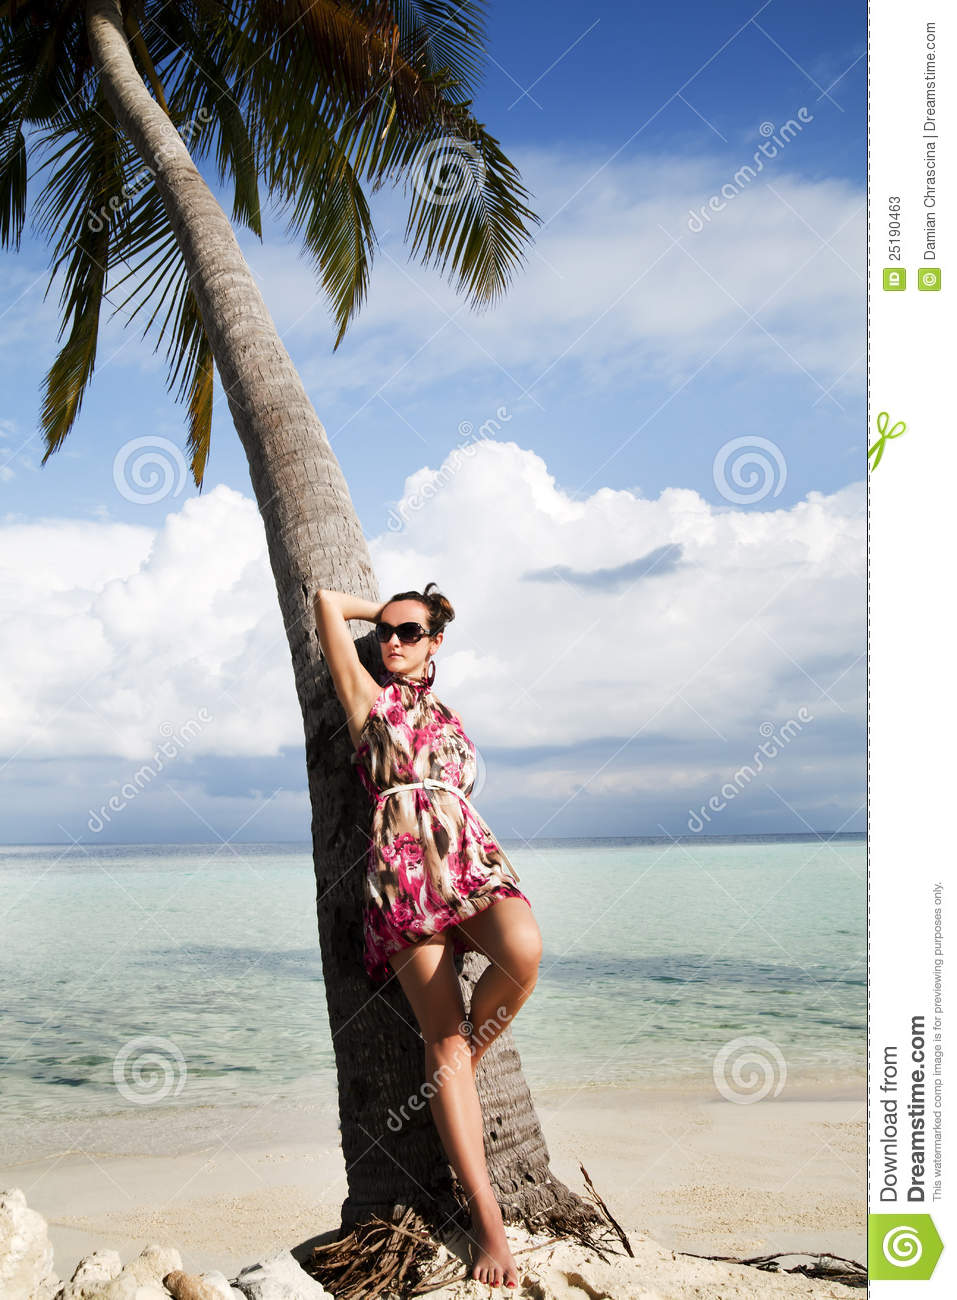 Carefree Young Woman On Island Vacation Stock Photos ...